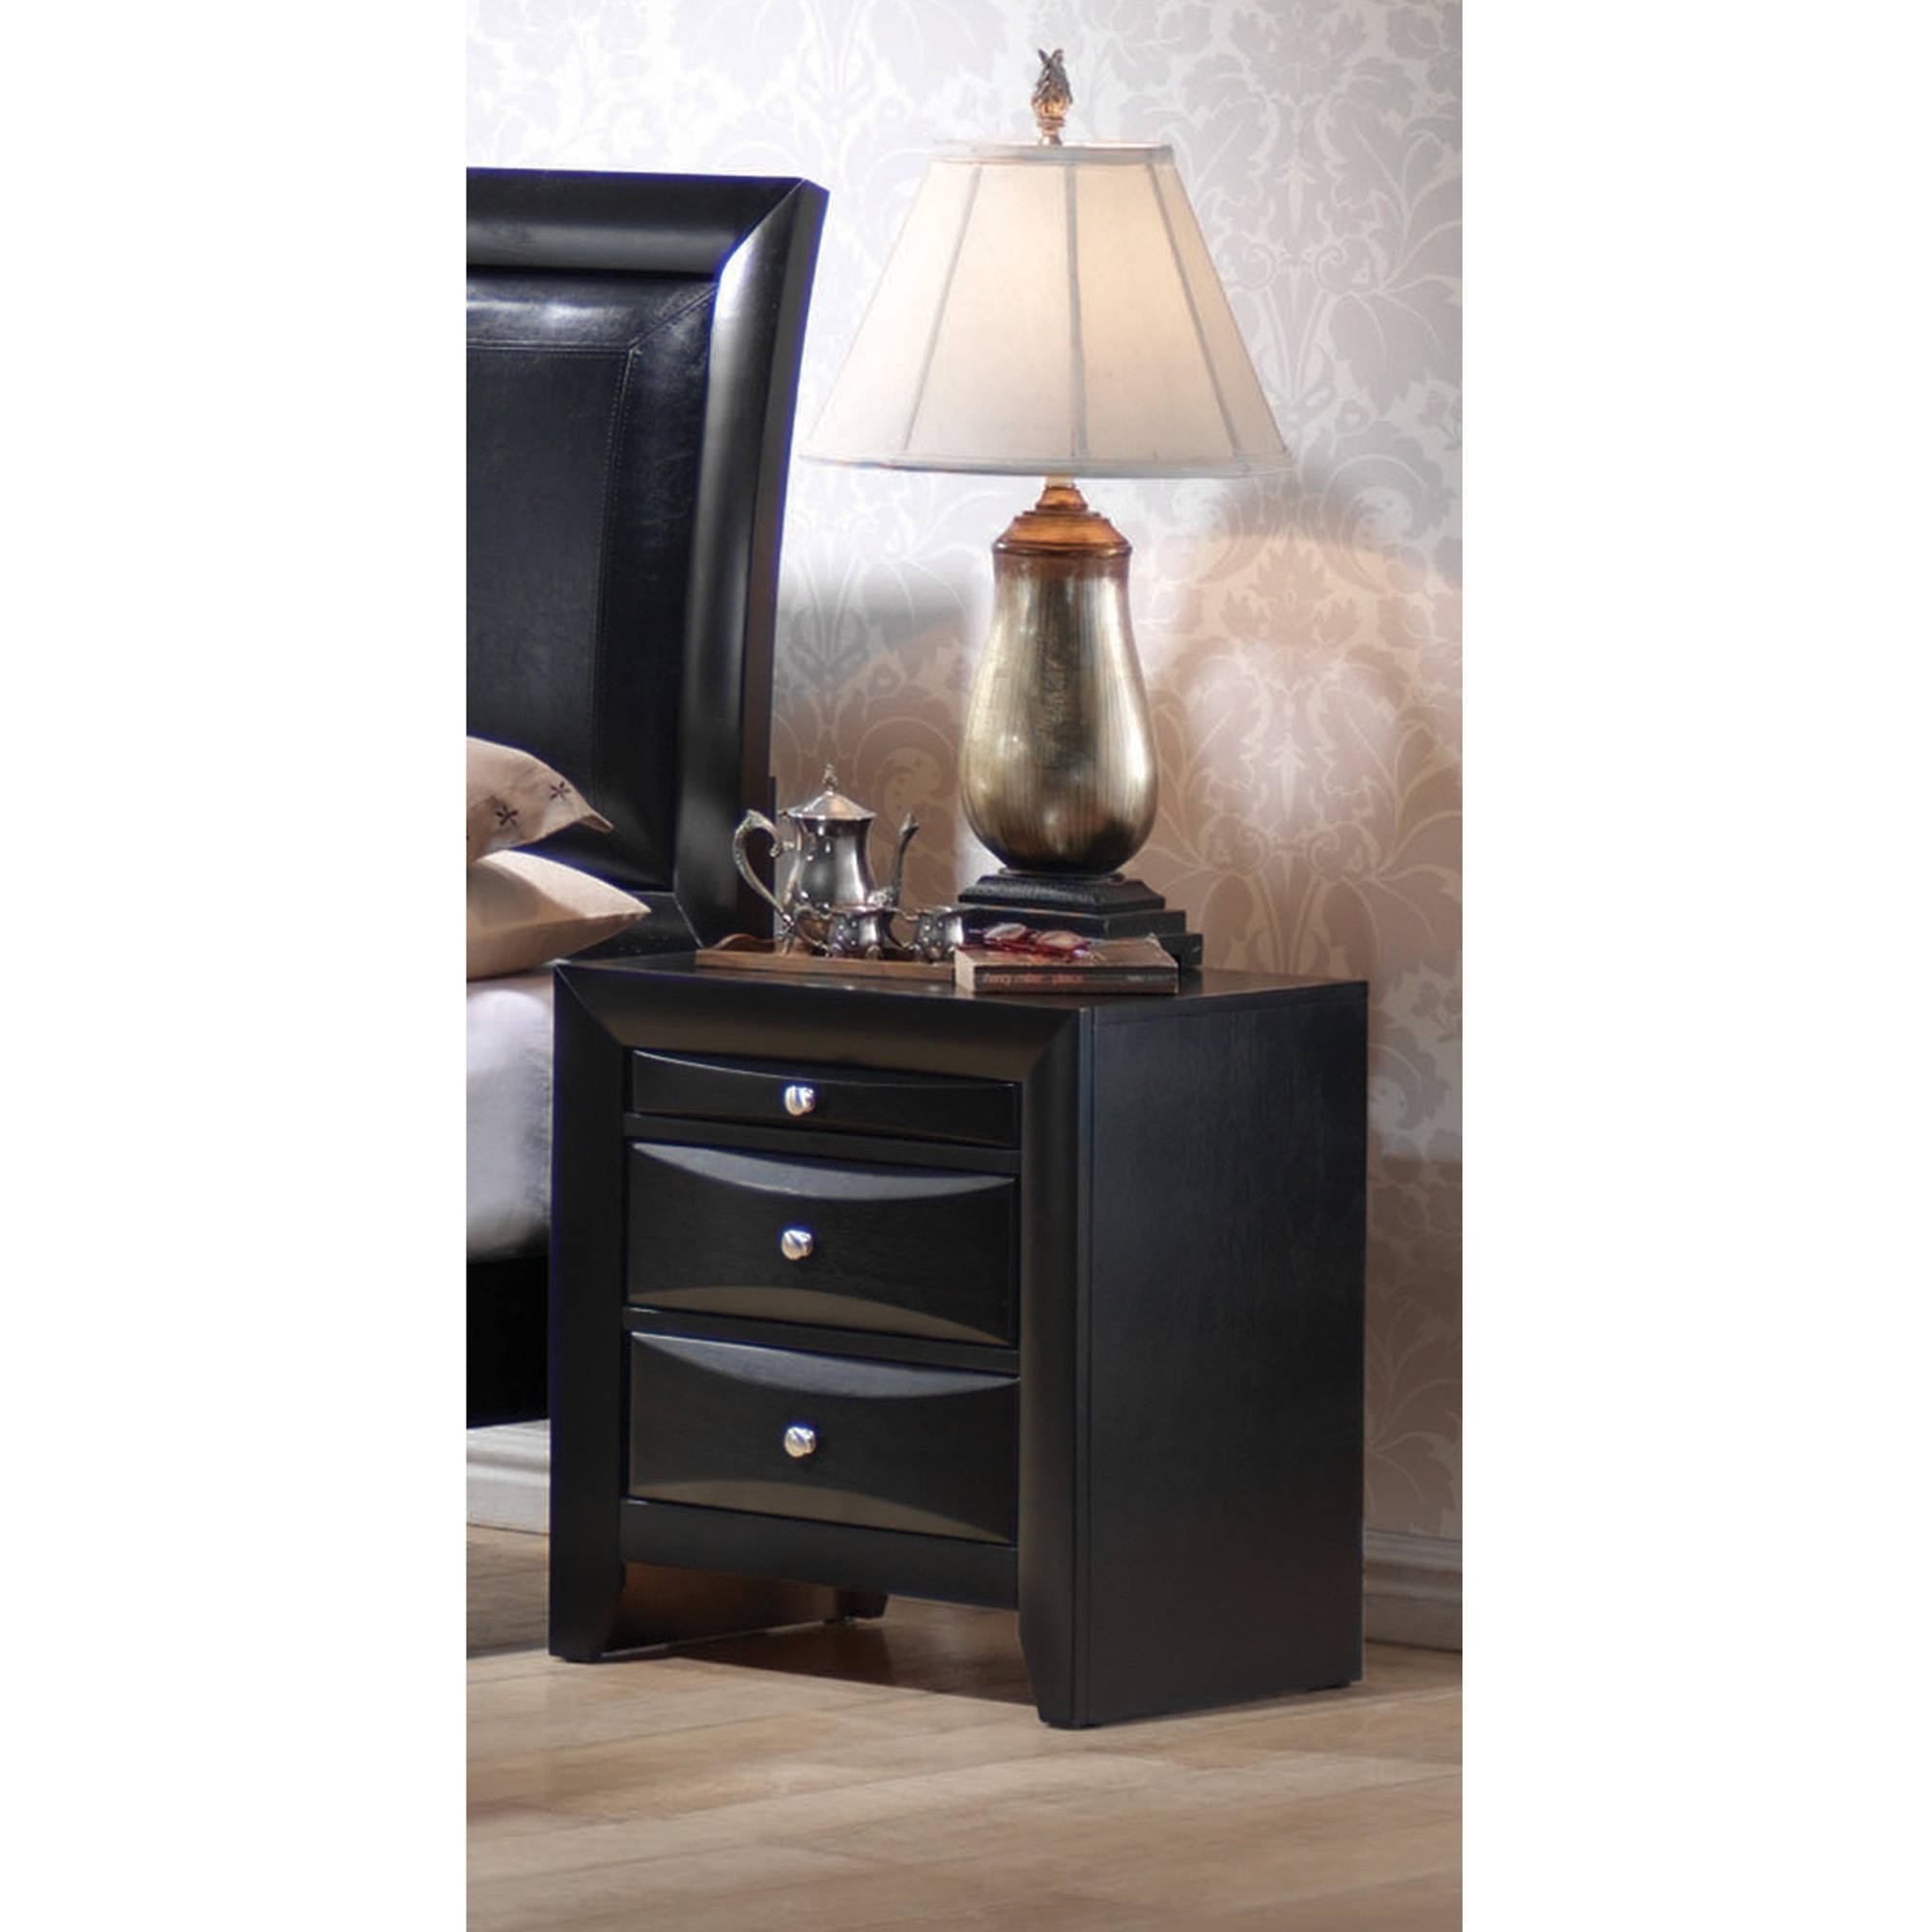 Coaster Company Briana Collection Nightstand, Black by Coaster Company